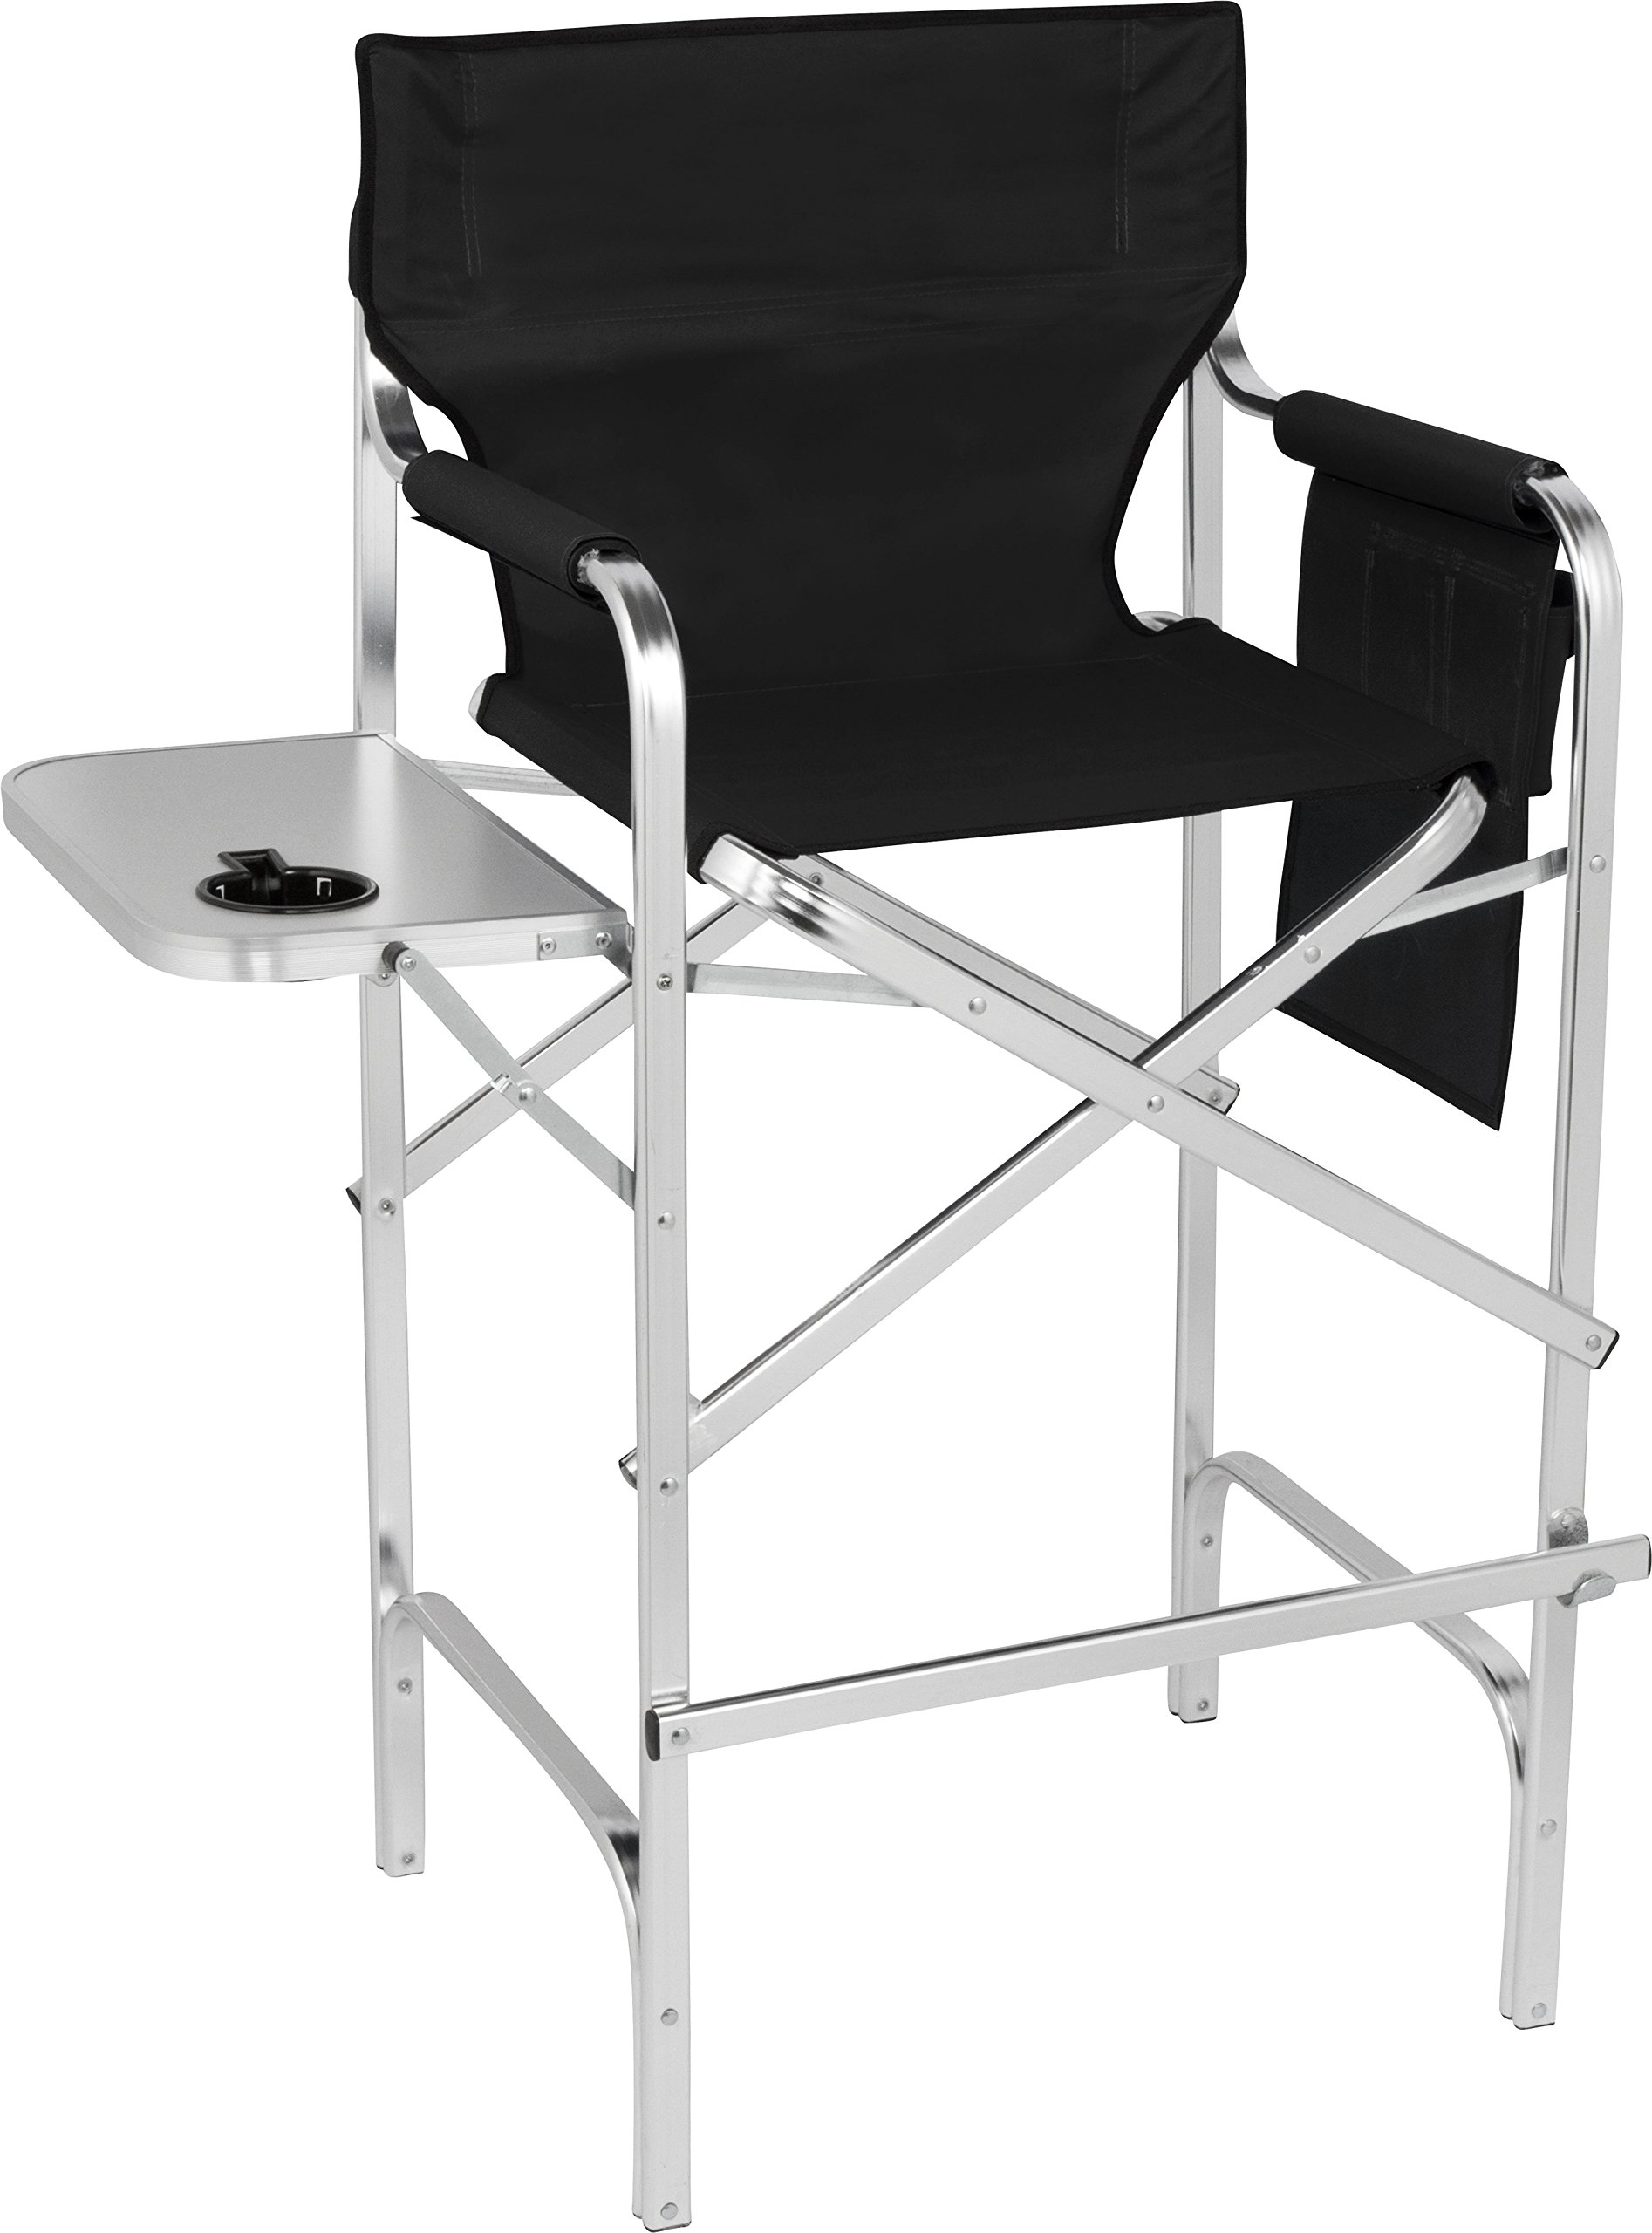 Trademark Innovations 45'' Aluminum Frame Tall Metal Director's Chair With Side Table by (Black)